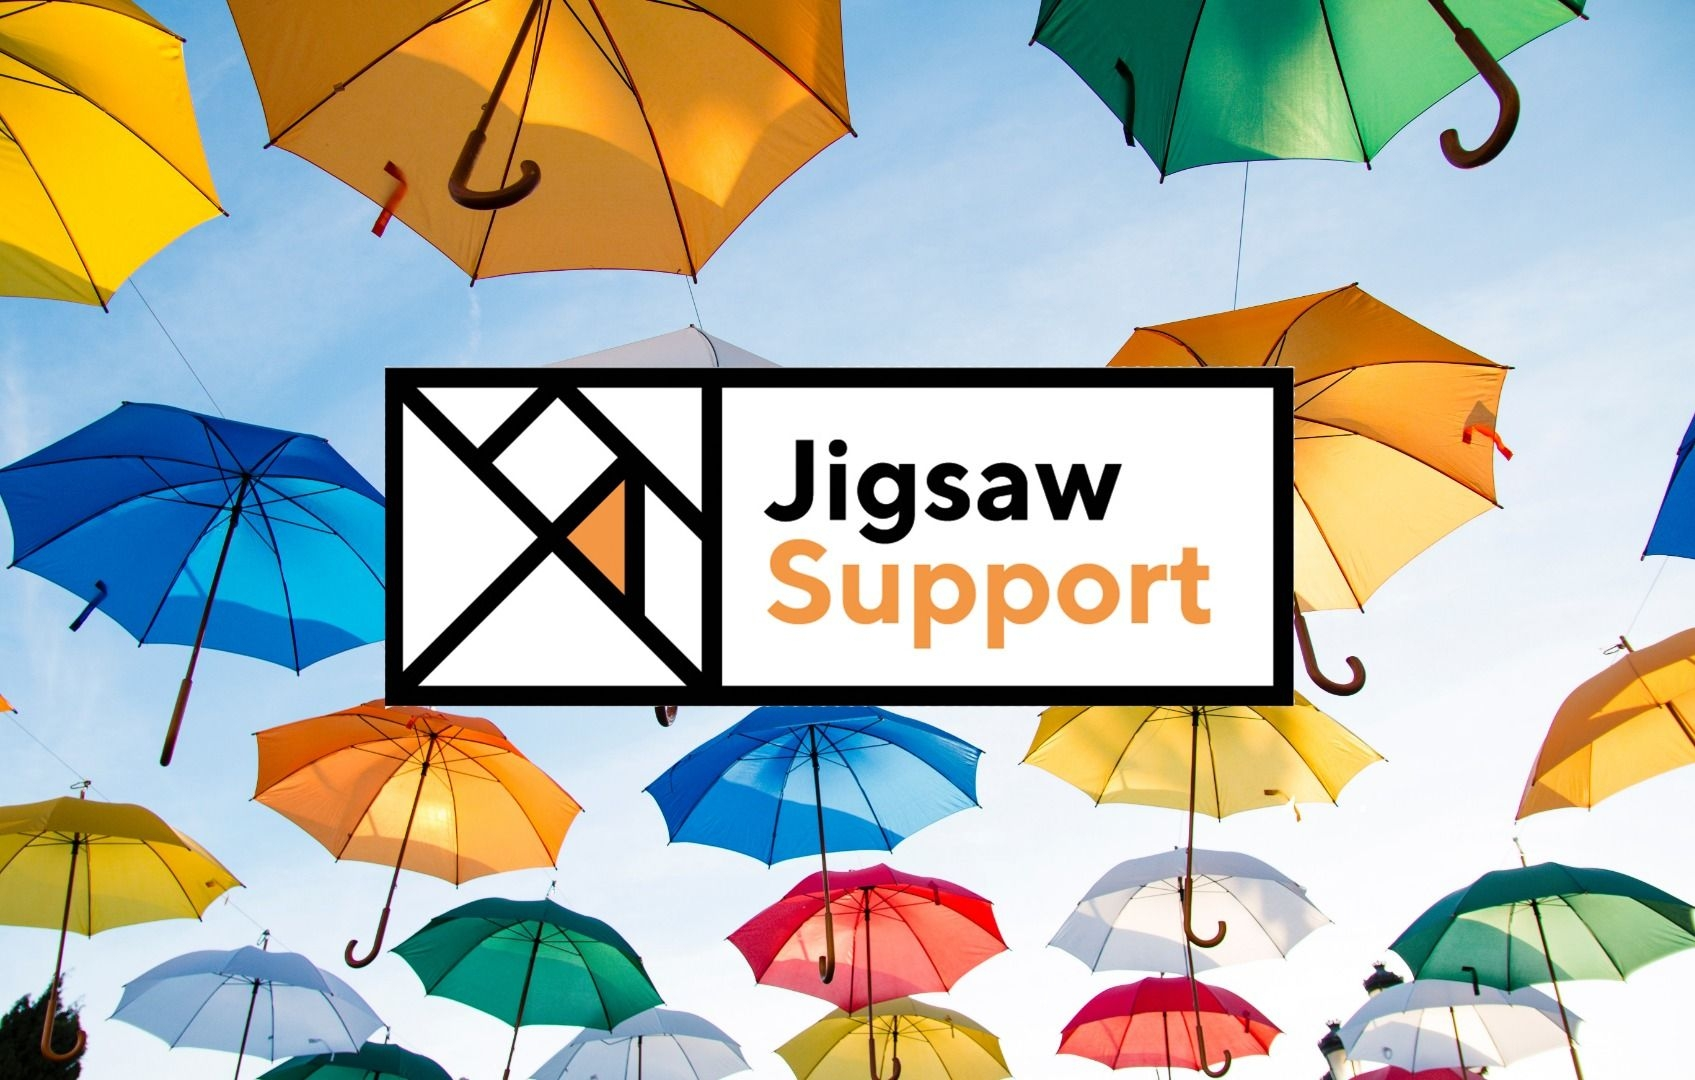 Jigsaw Support launched